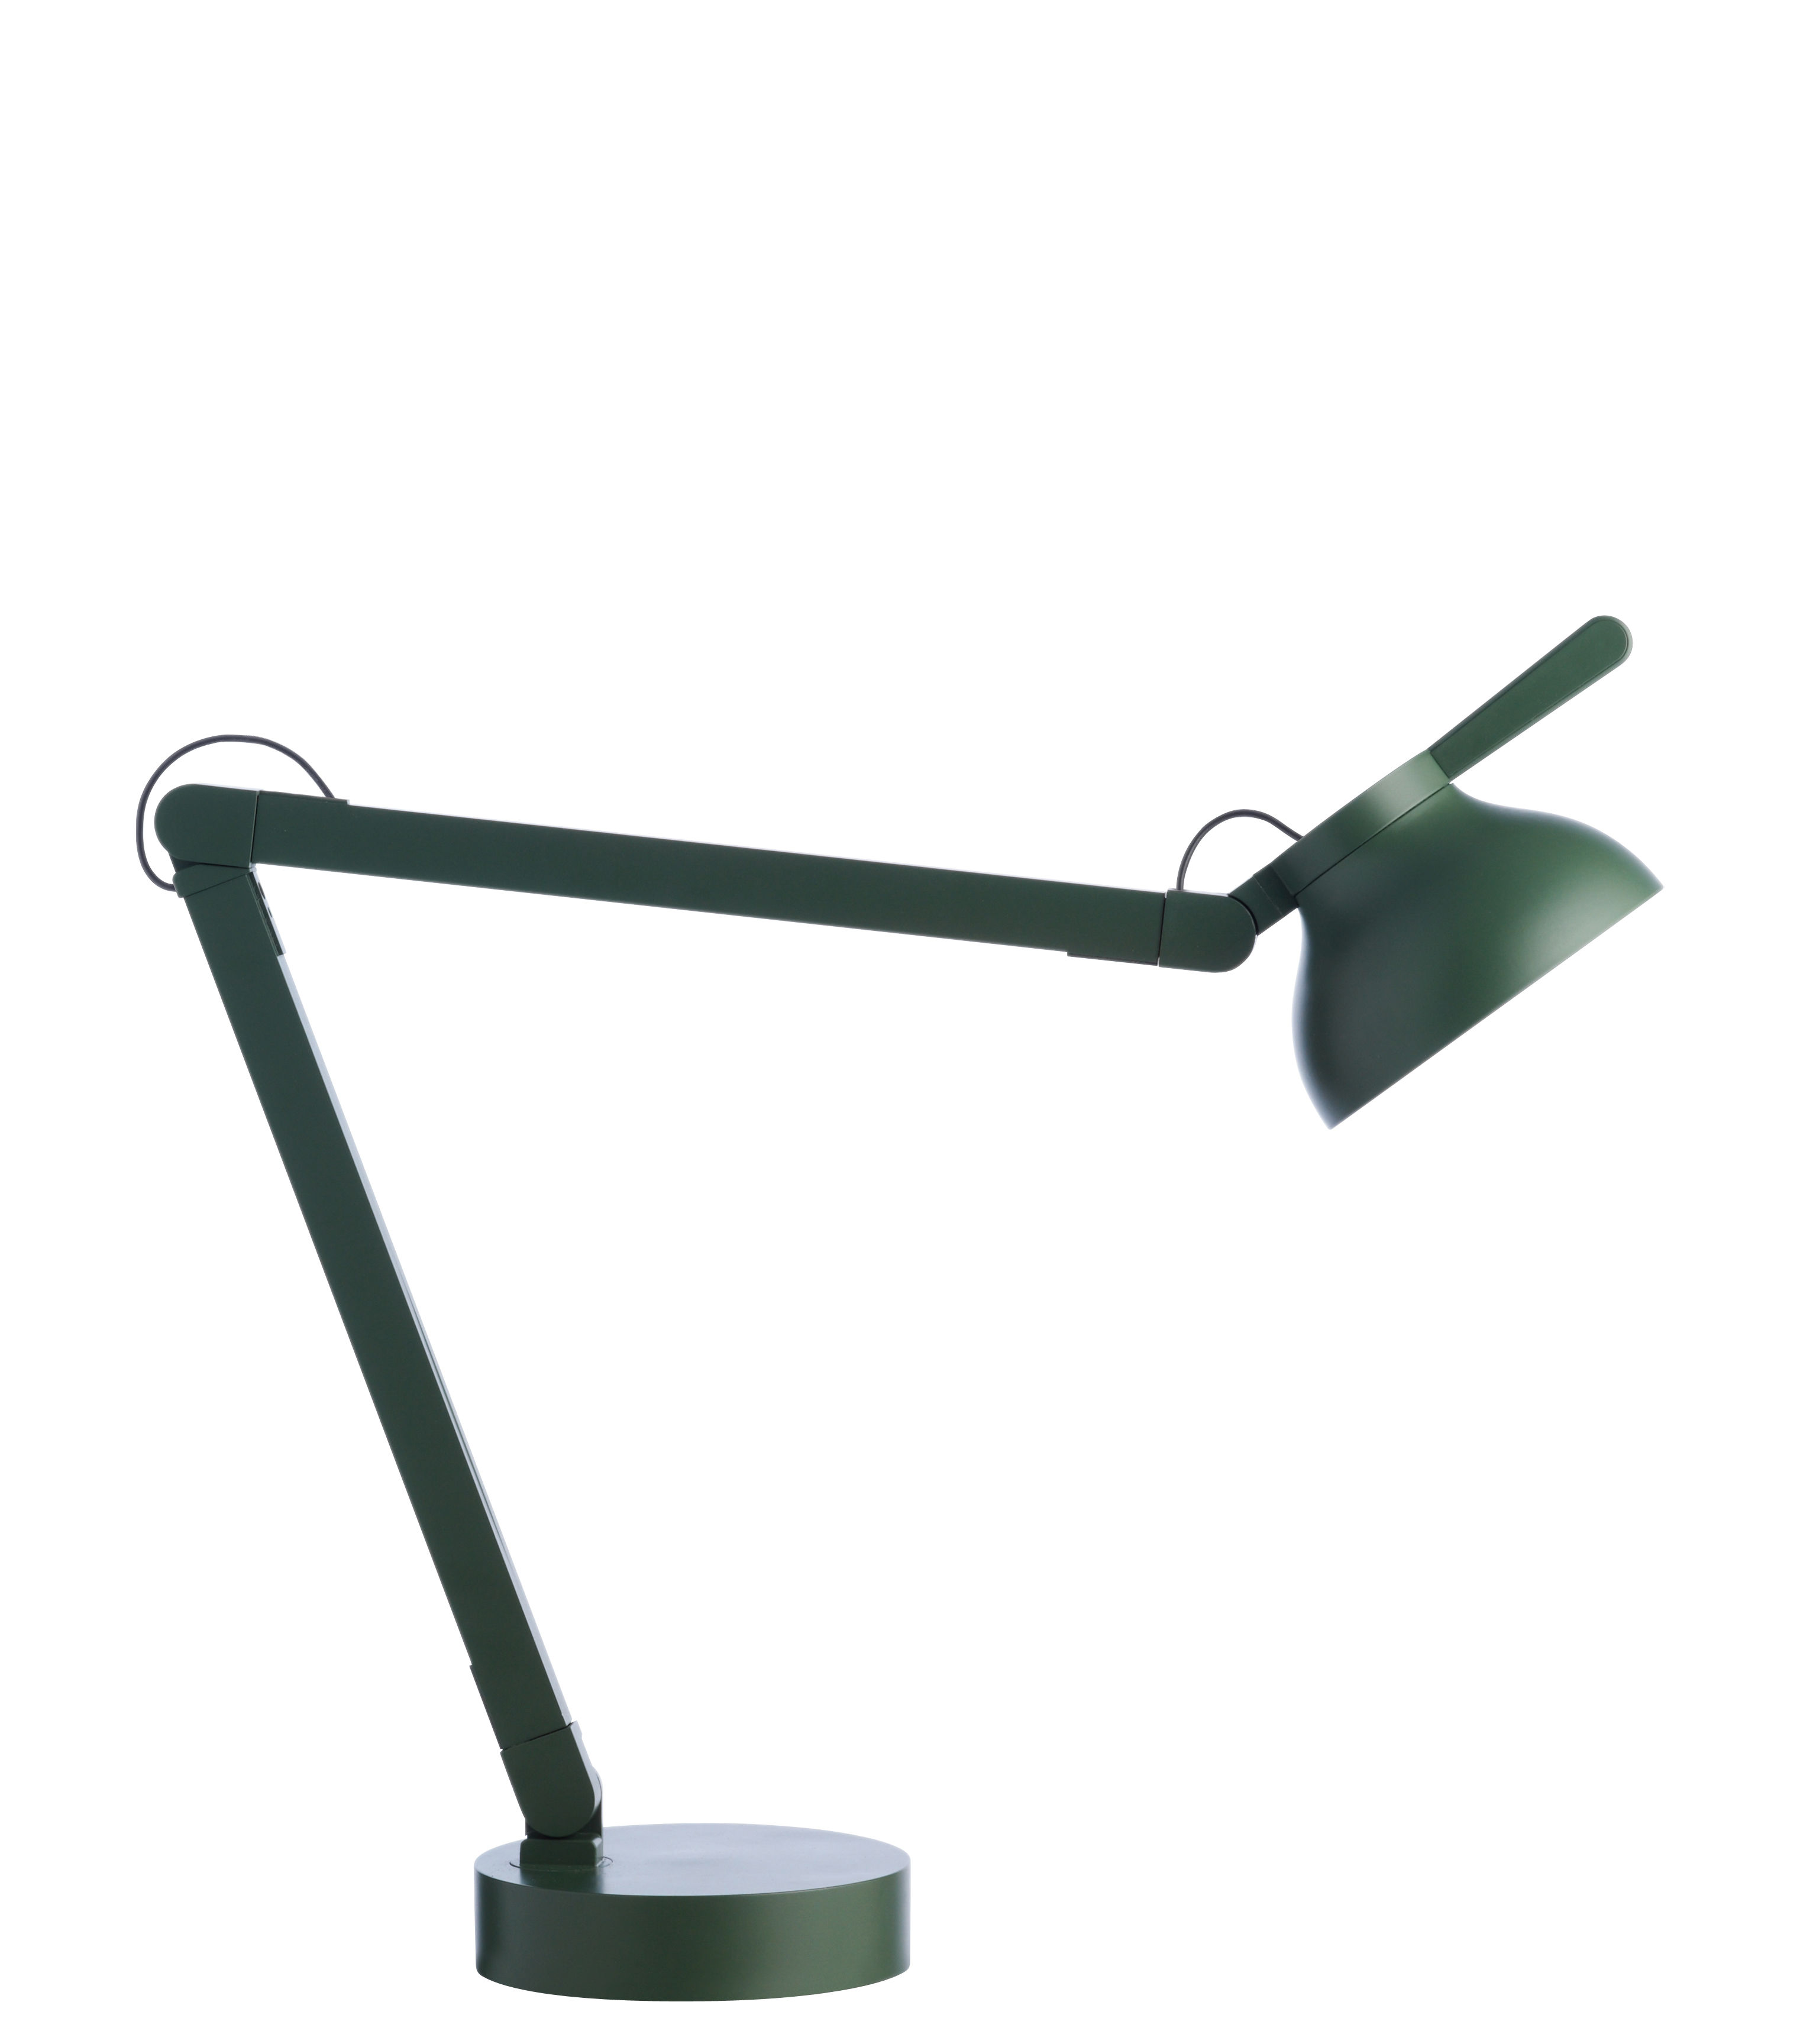 Lighting - Table Lamps - PC Table lamp - by Pierre Charpin by wrong.london - Green - Cast iron, Extruded aluminium, Polycarbonate